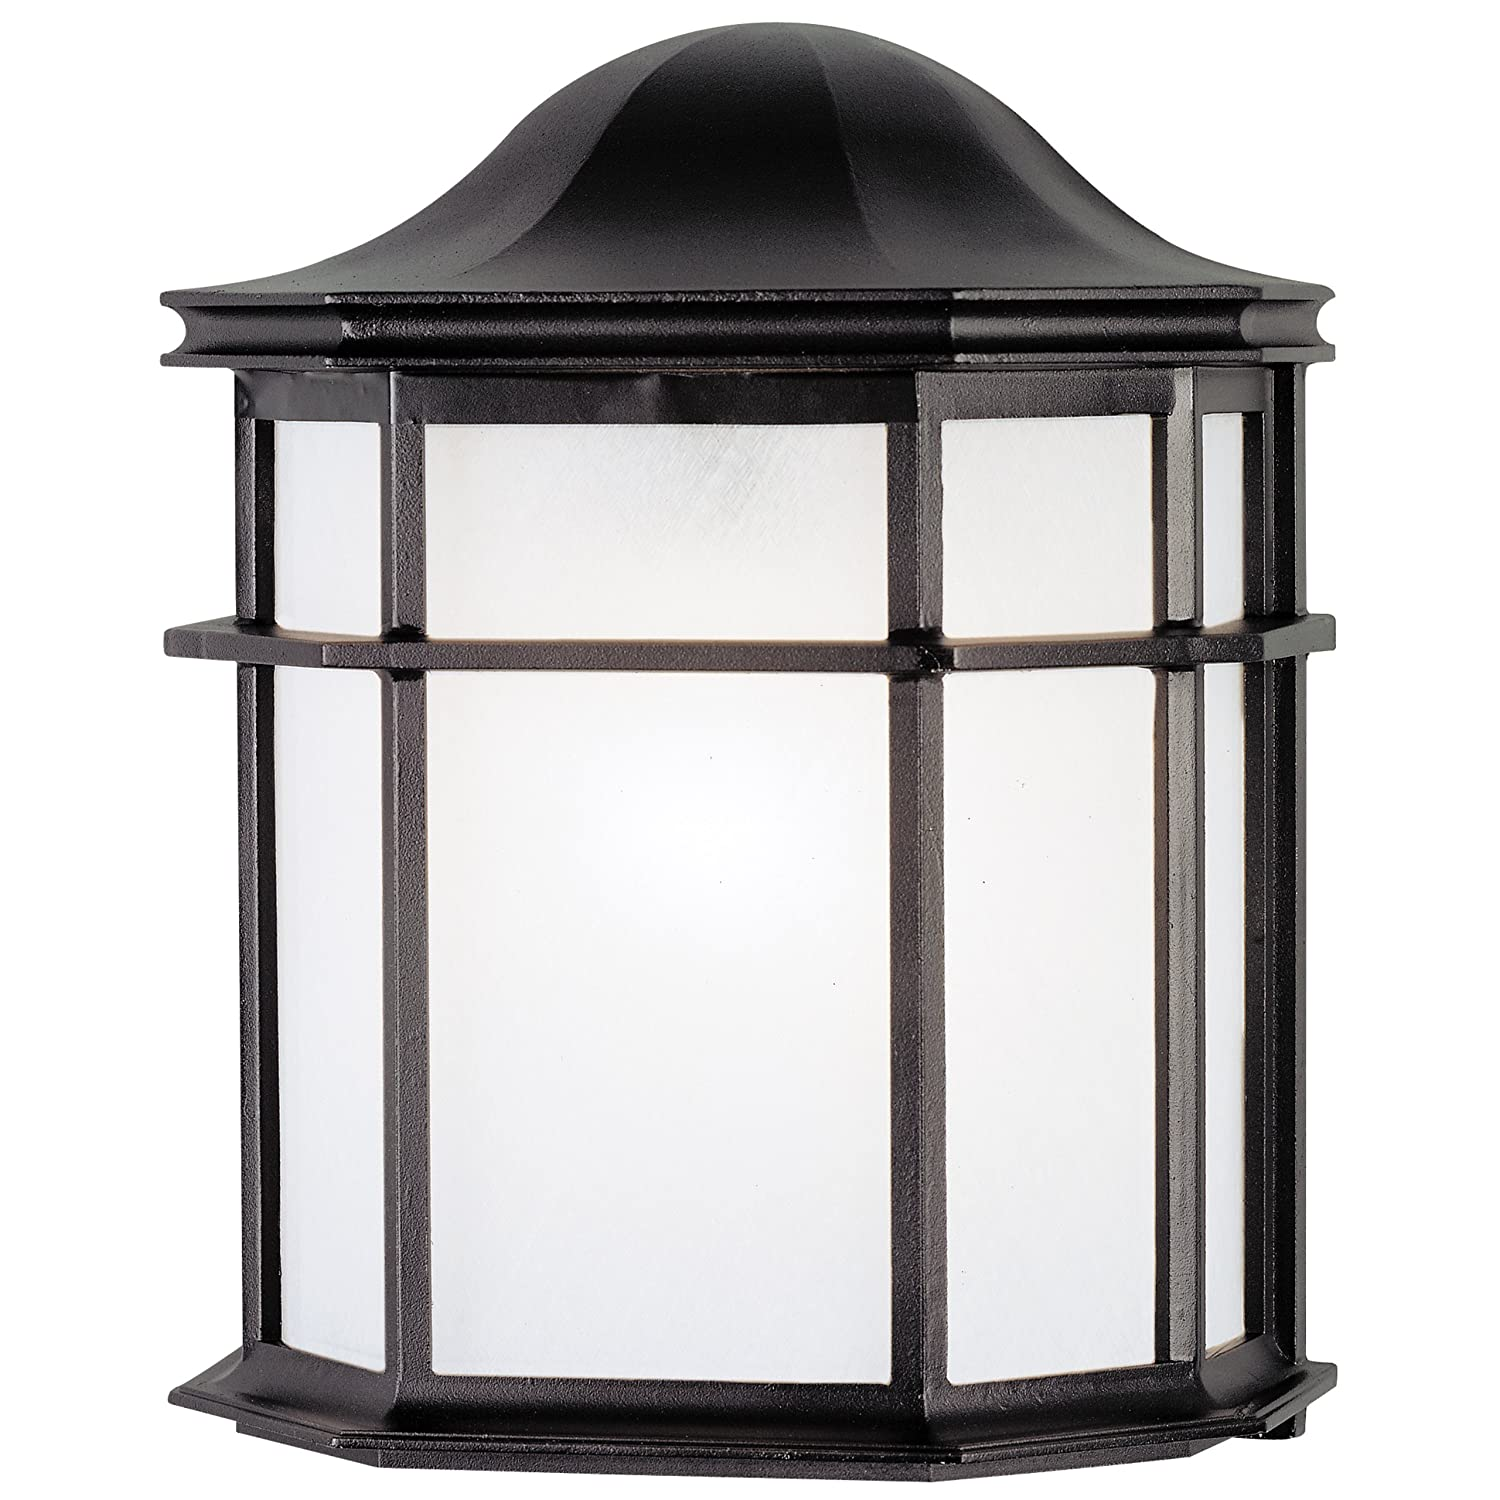 Westinghouse 6689800 one light exterior wall lantern textured black westinghouse 6689800 one light exterior wall lantern textured black finish on cast aluminum with white acrylic lens wall porch lights amazon aloadofball Choice Image